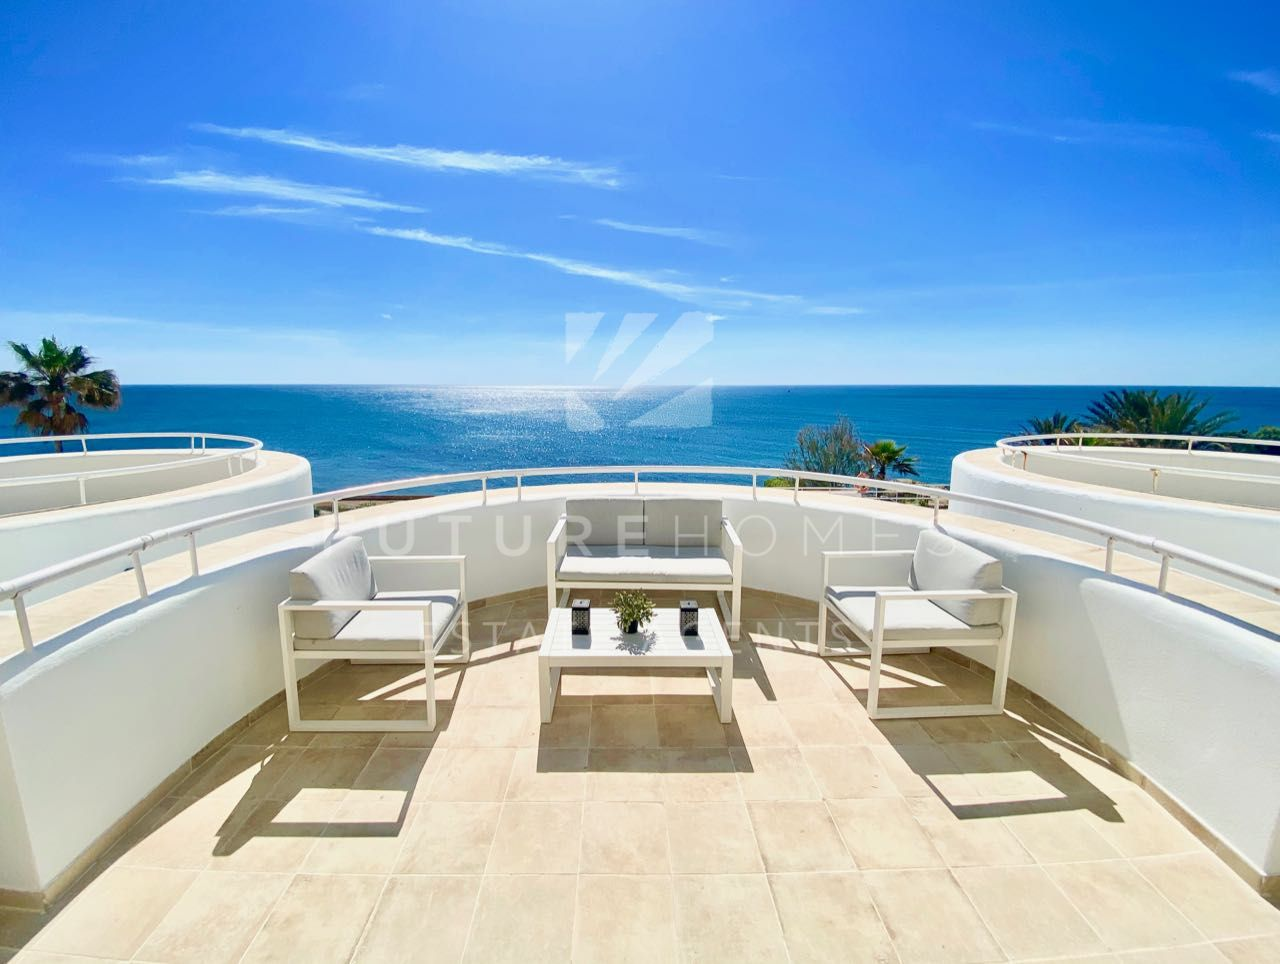 Immaculate apartment on the frontline beach community of Sinfonia del Mar, Estepona